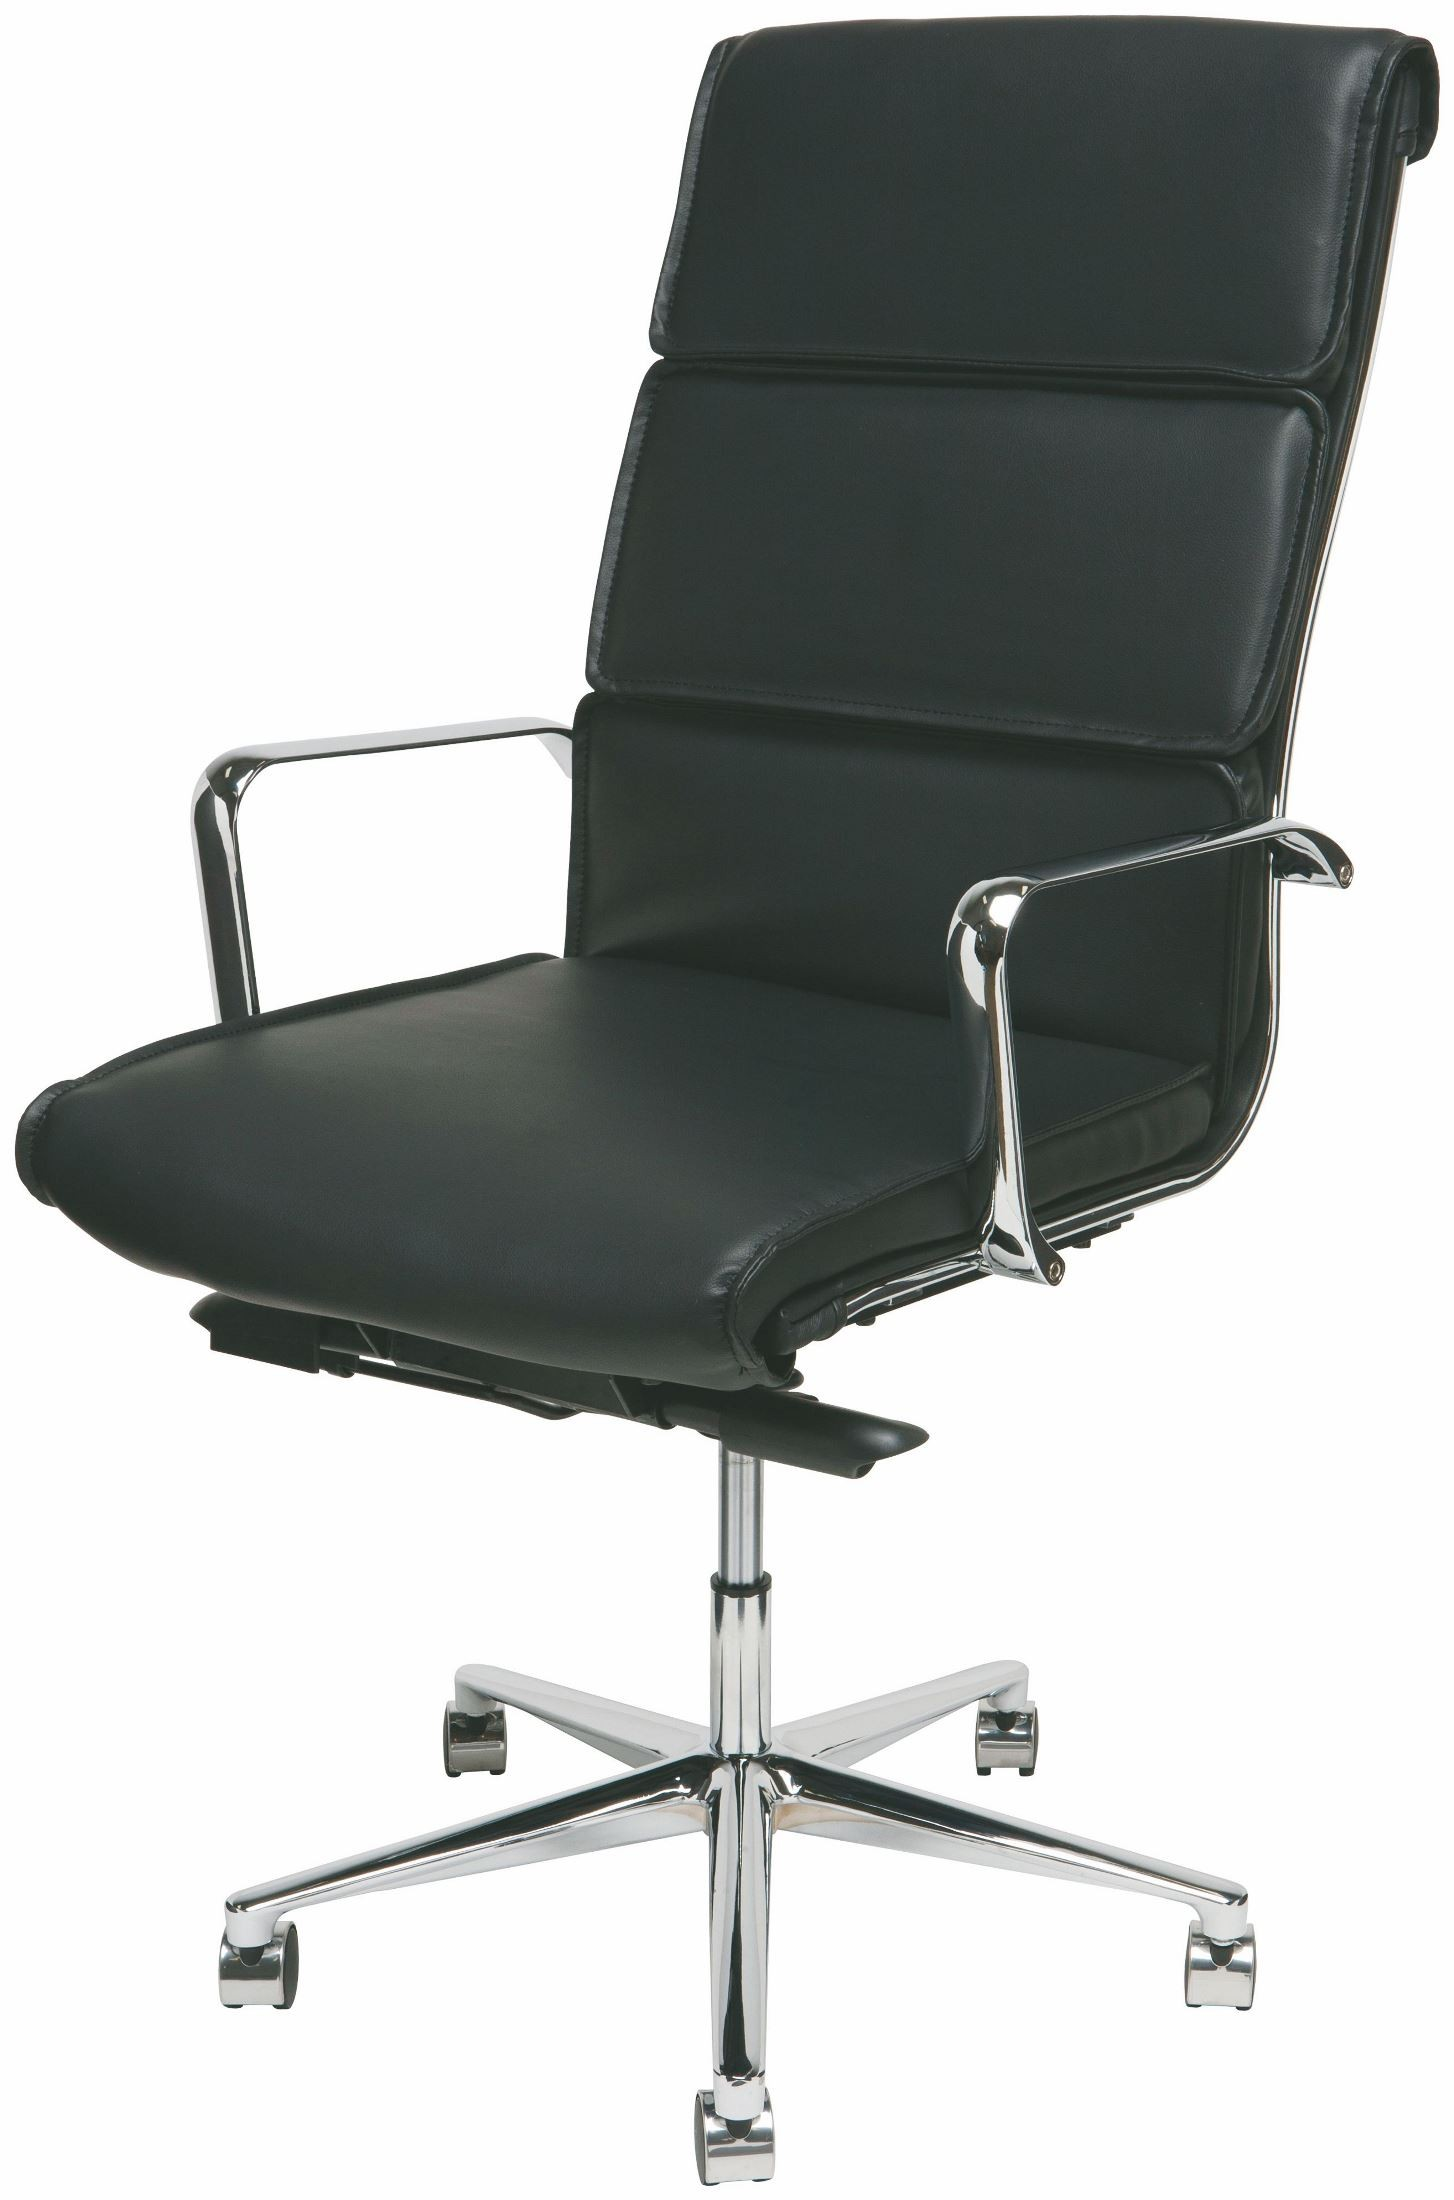 Lucia Black and Silver Metal High Back fice Chair from